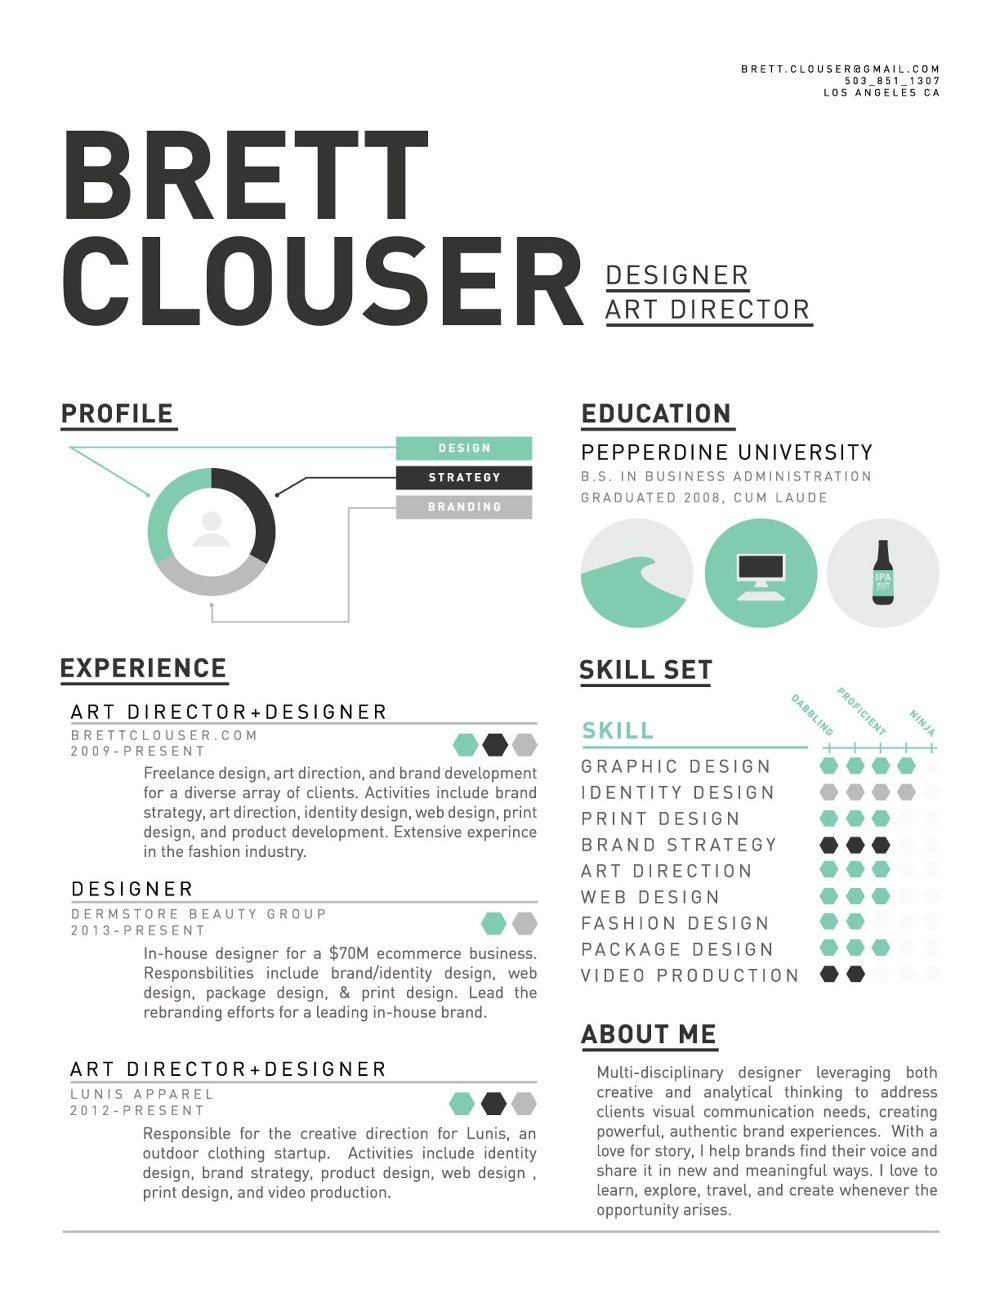 Design Consultant Resume  Google Search  Design